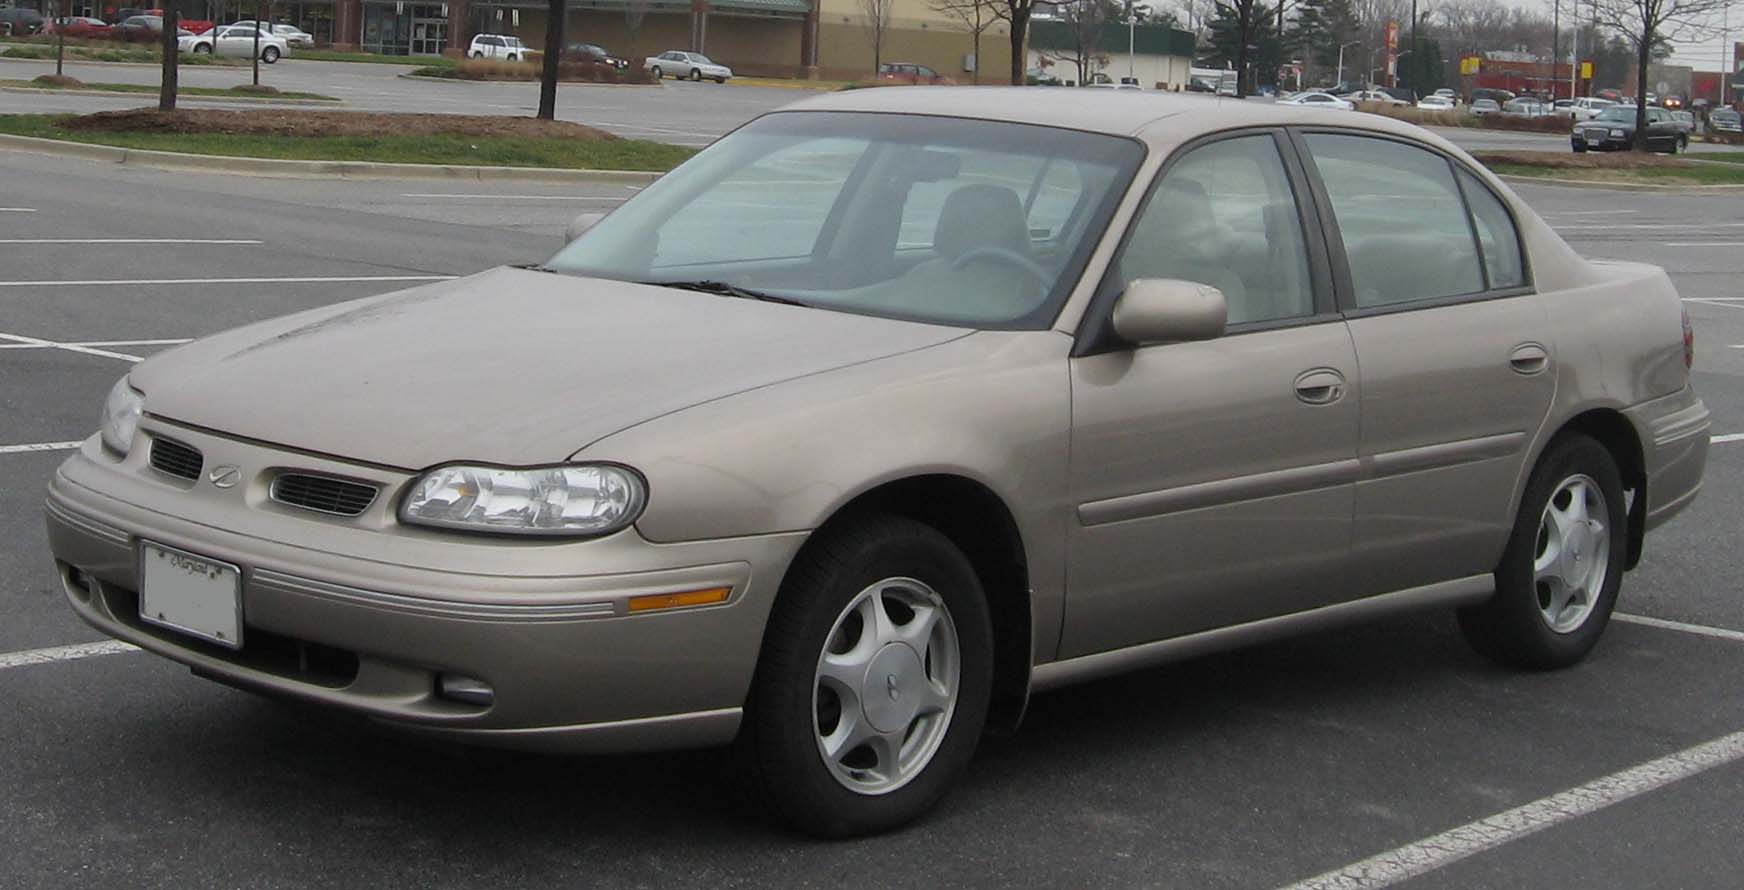 1997 Oldsmobile Cutlass #7